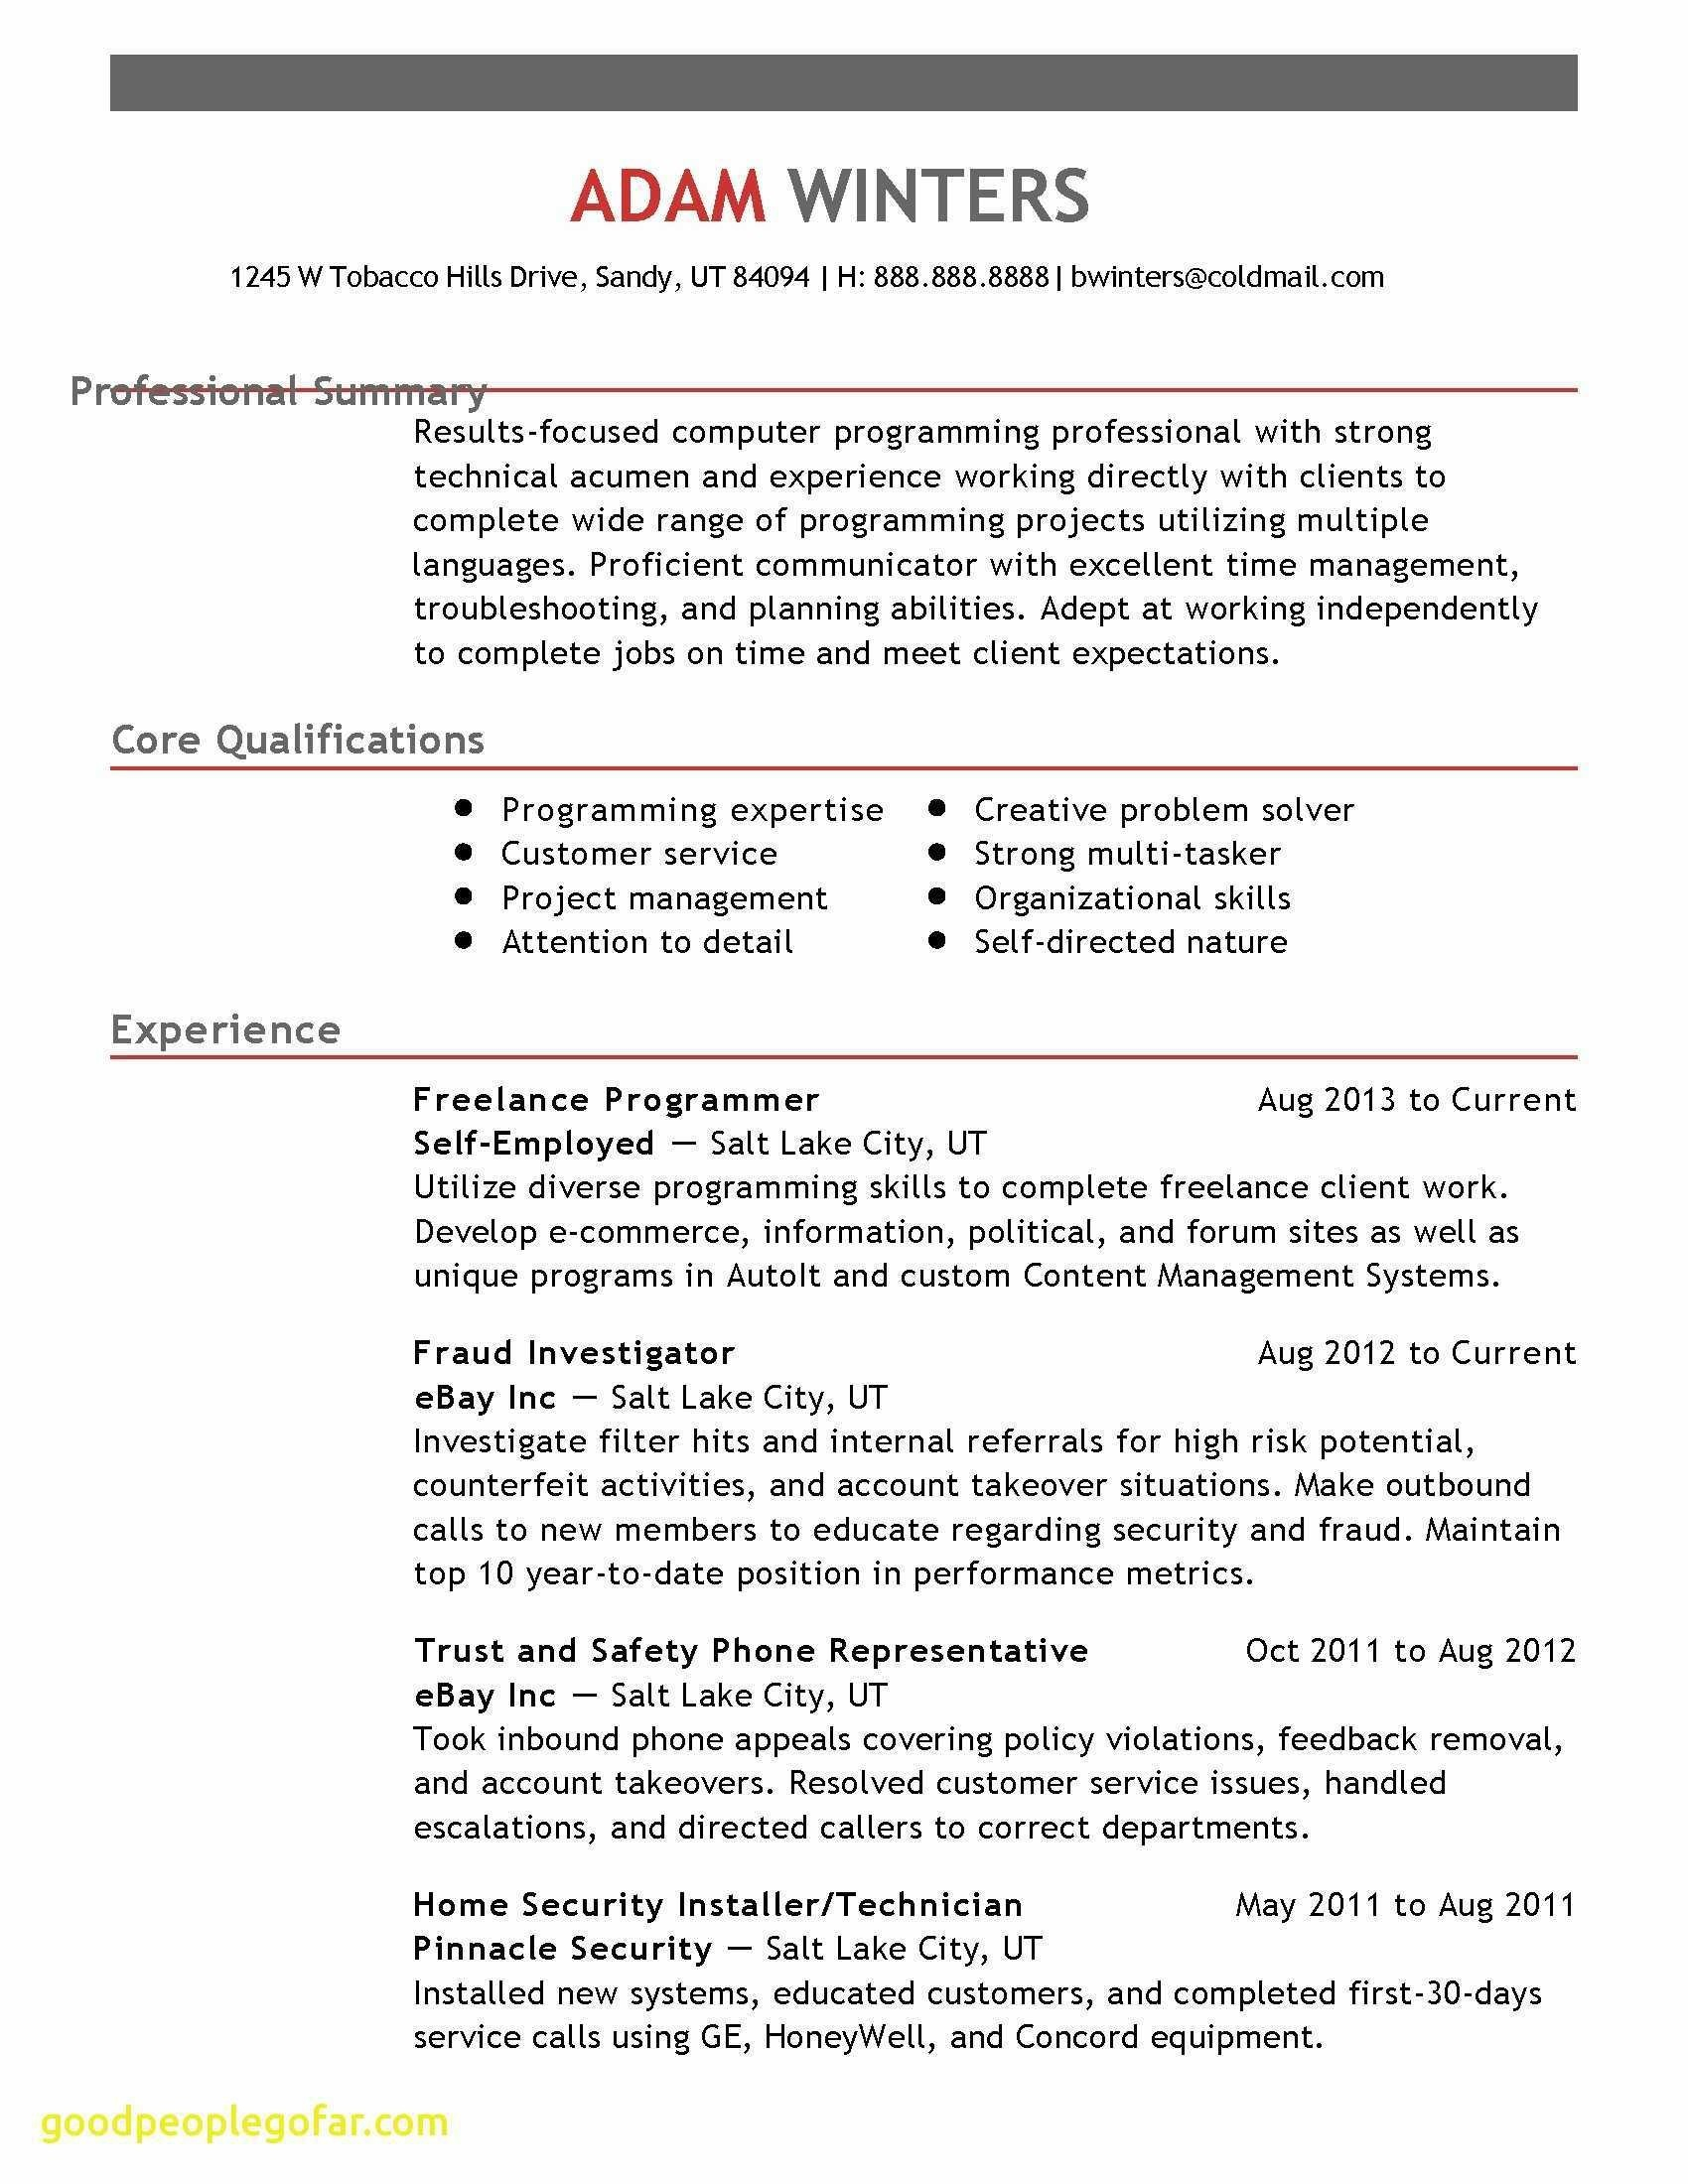 Resume Template Ai - Resume Website Examples New Resume Website Template Free